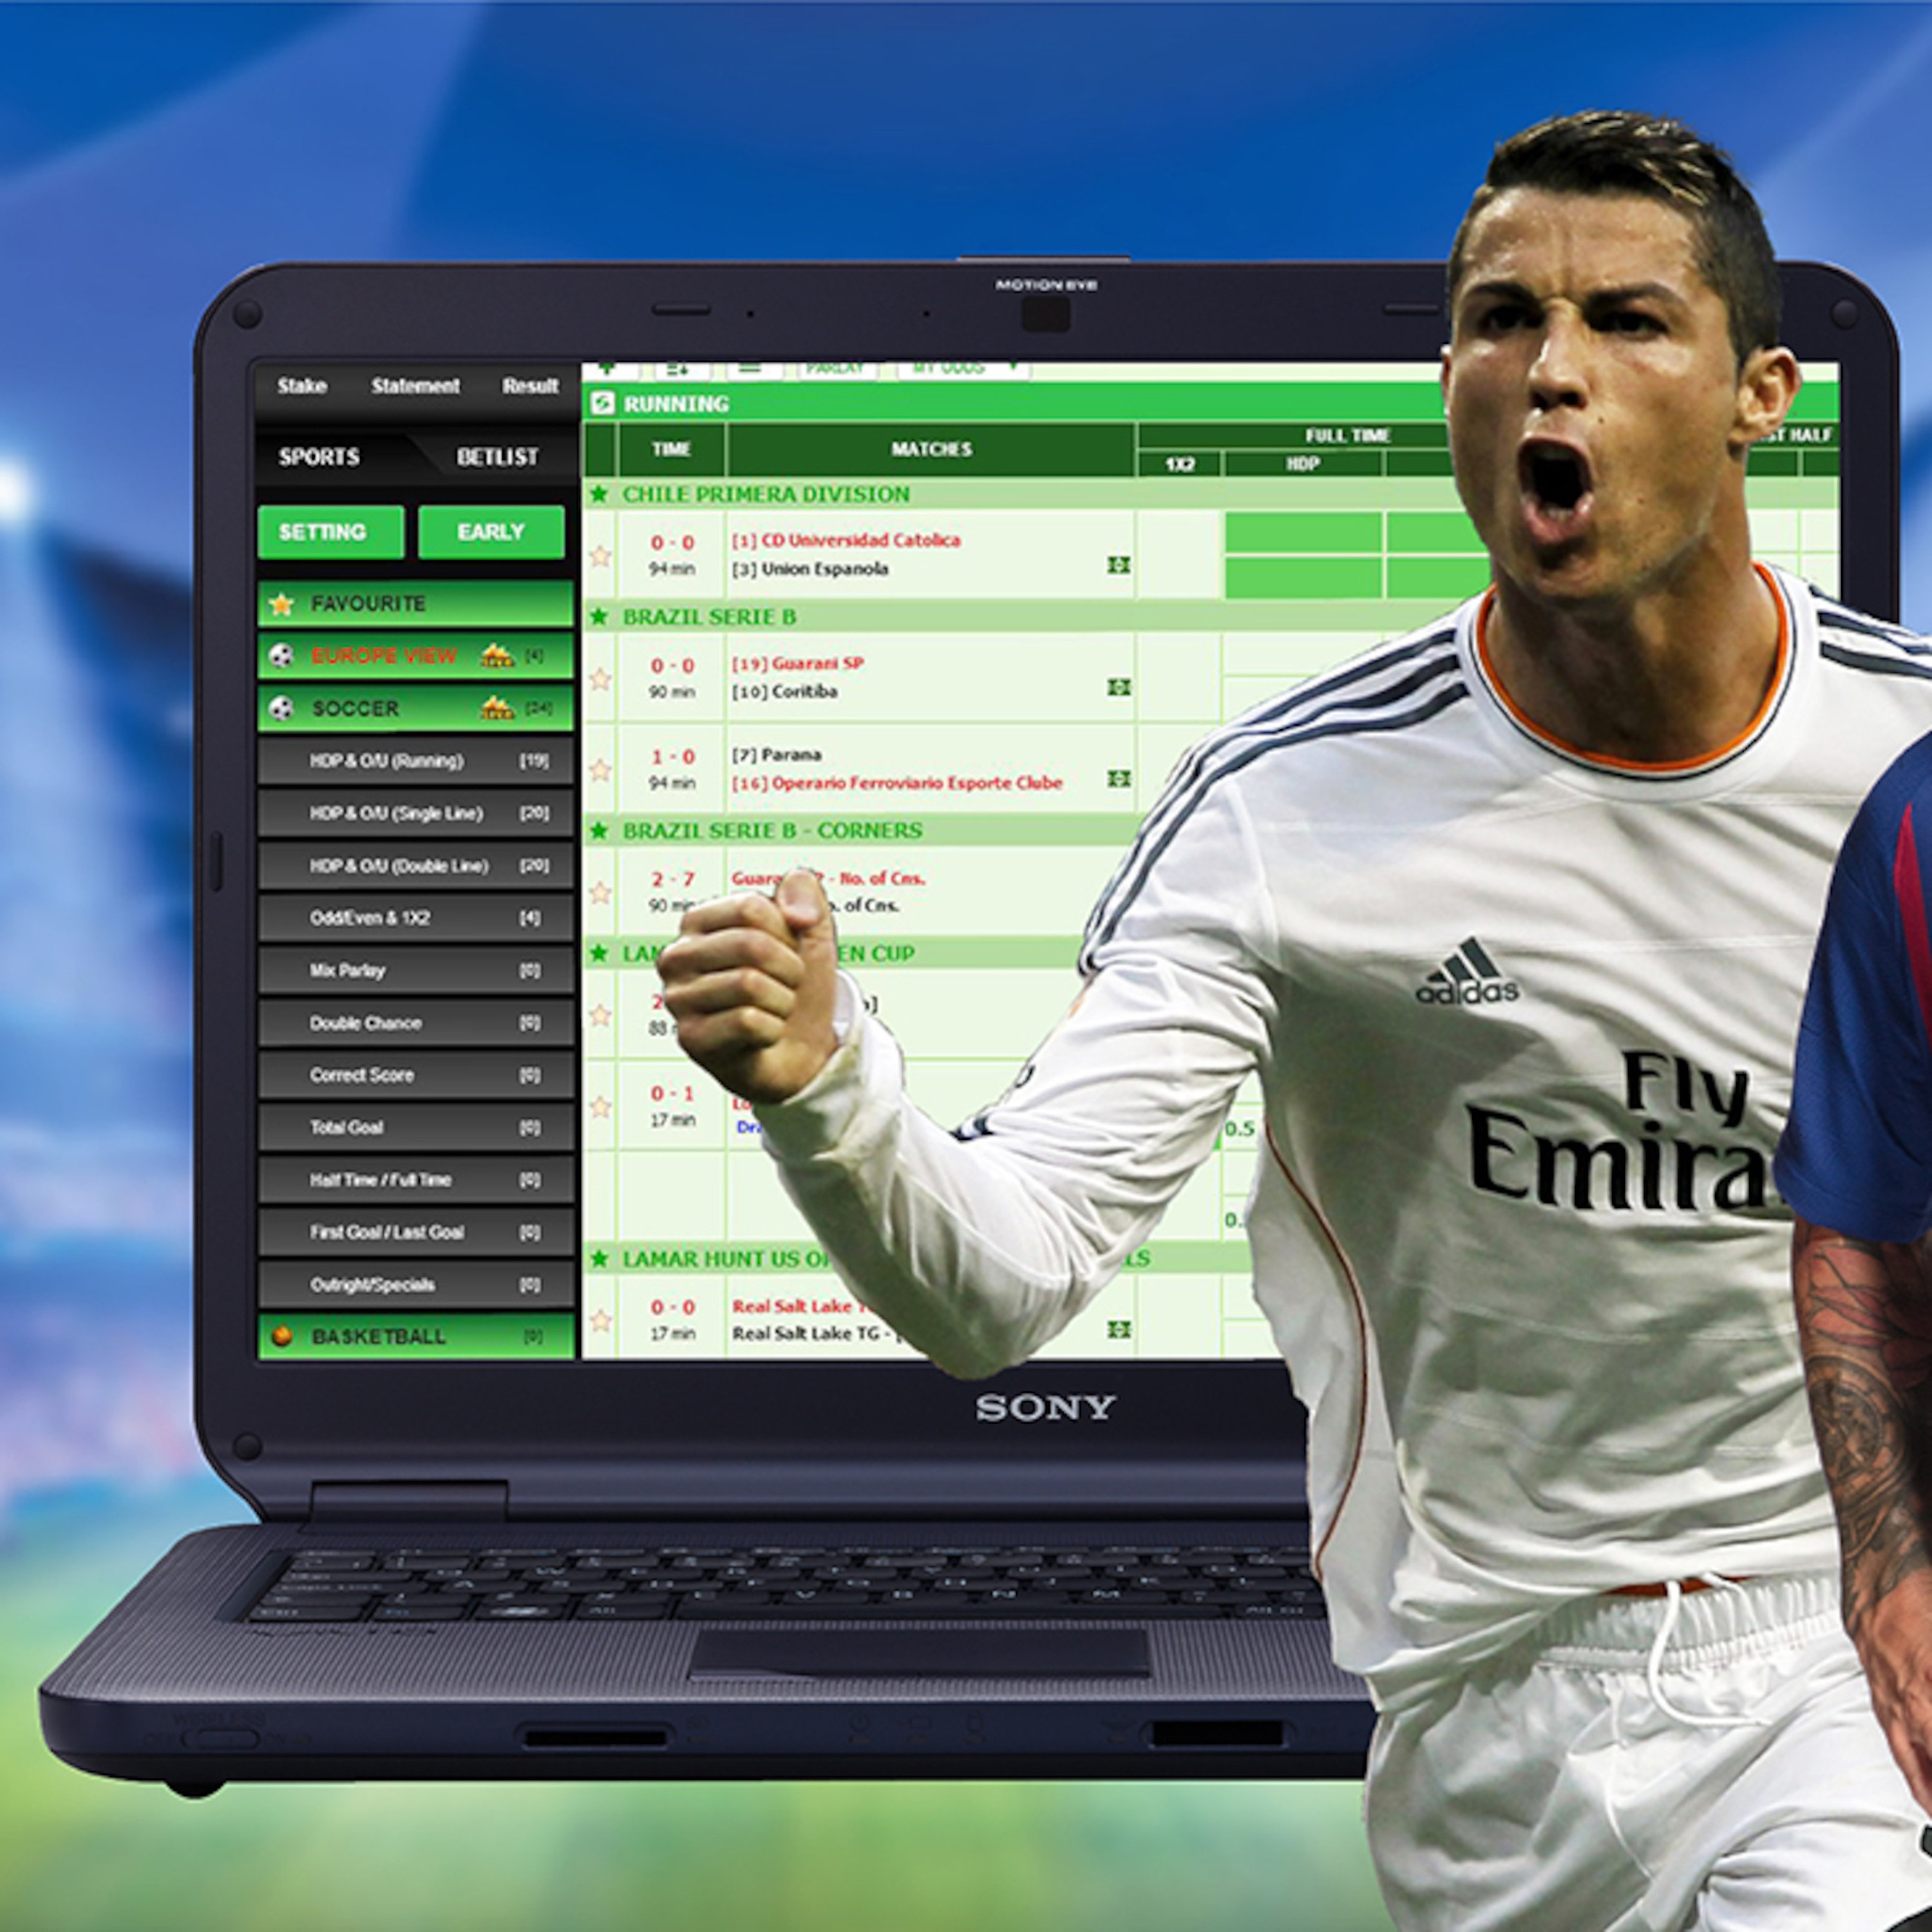 Football betting online malaysia shopping bitcoins pictures of angels